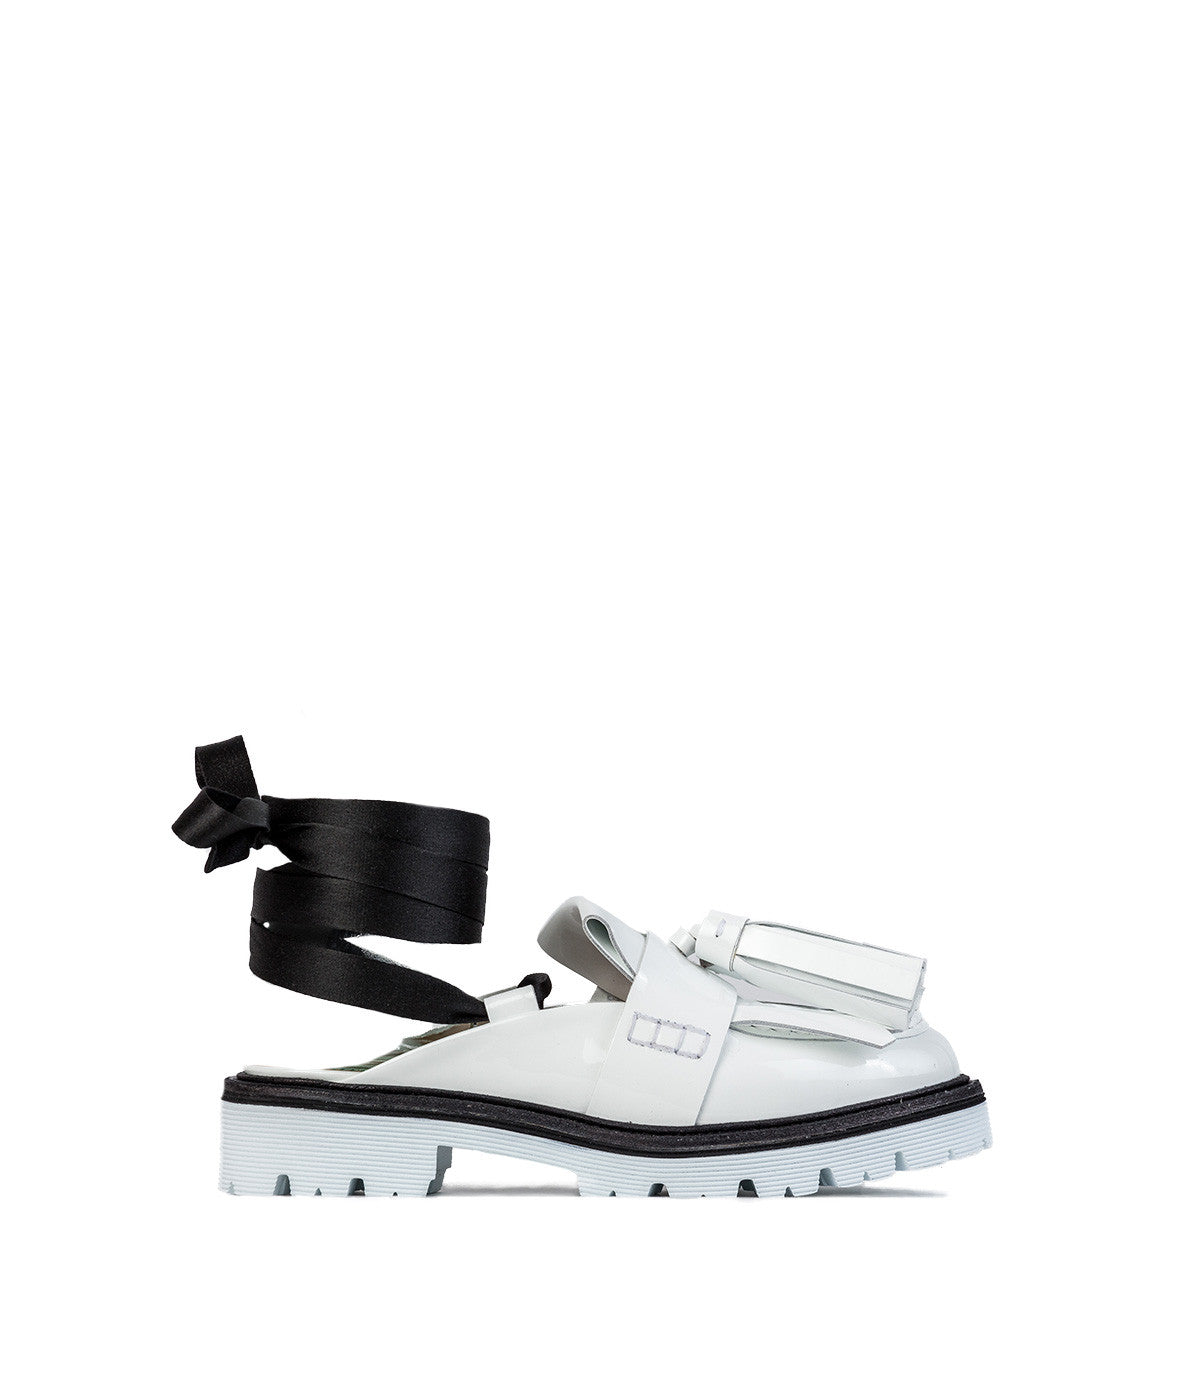 White Tassel Loafer Sandals